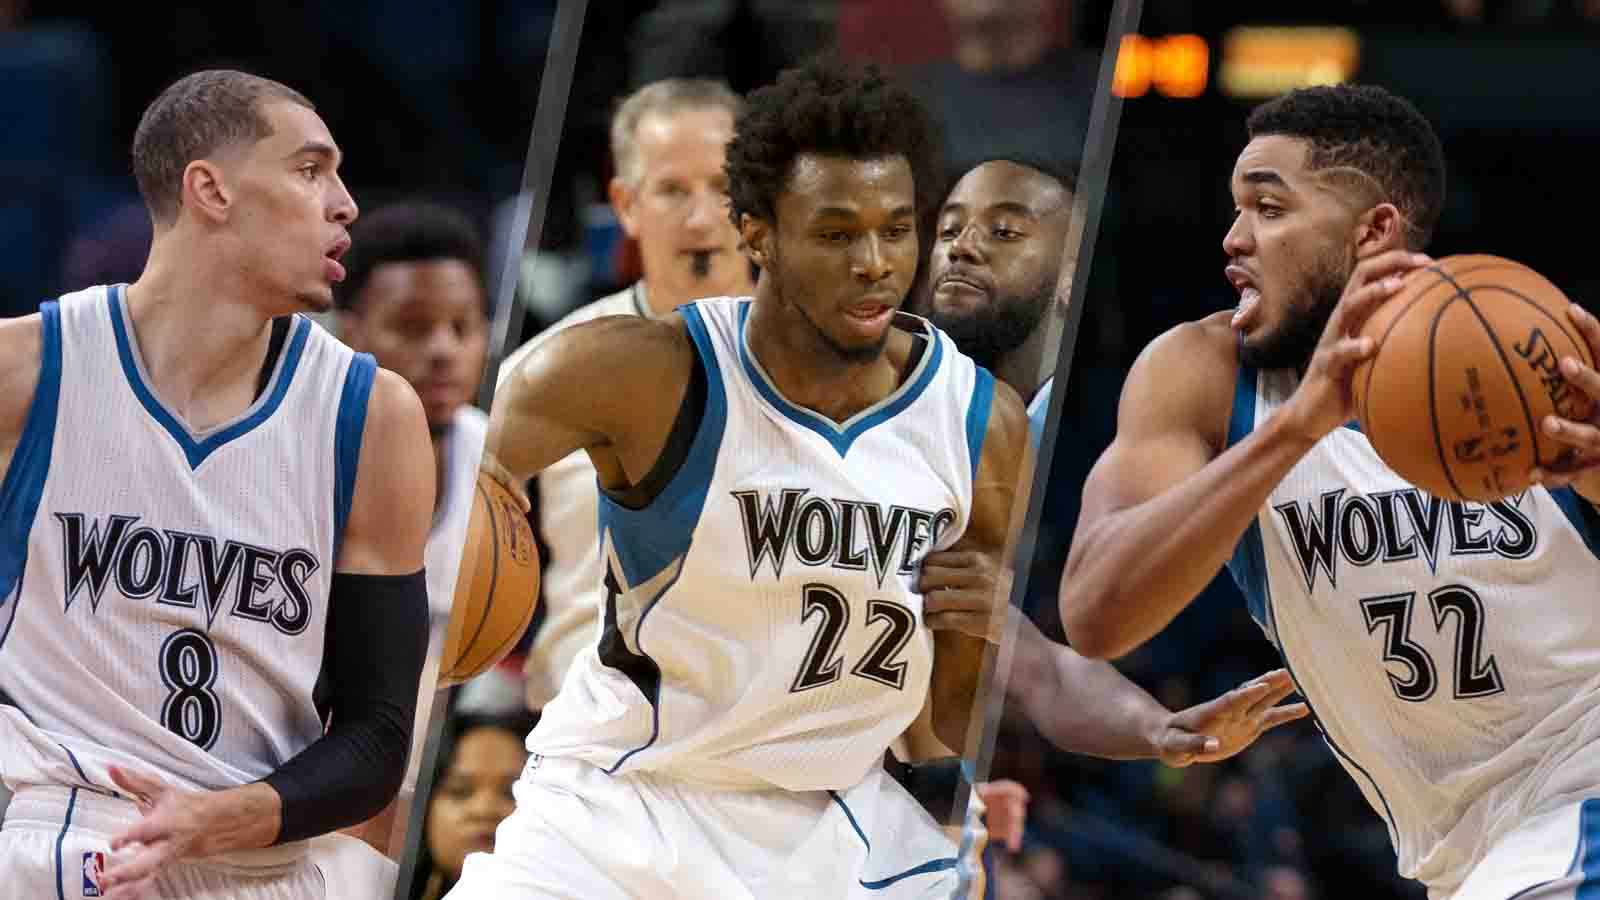 Season preview: Can Timberwolves' young core bust playoff drought?